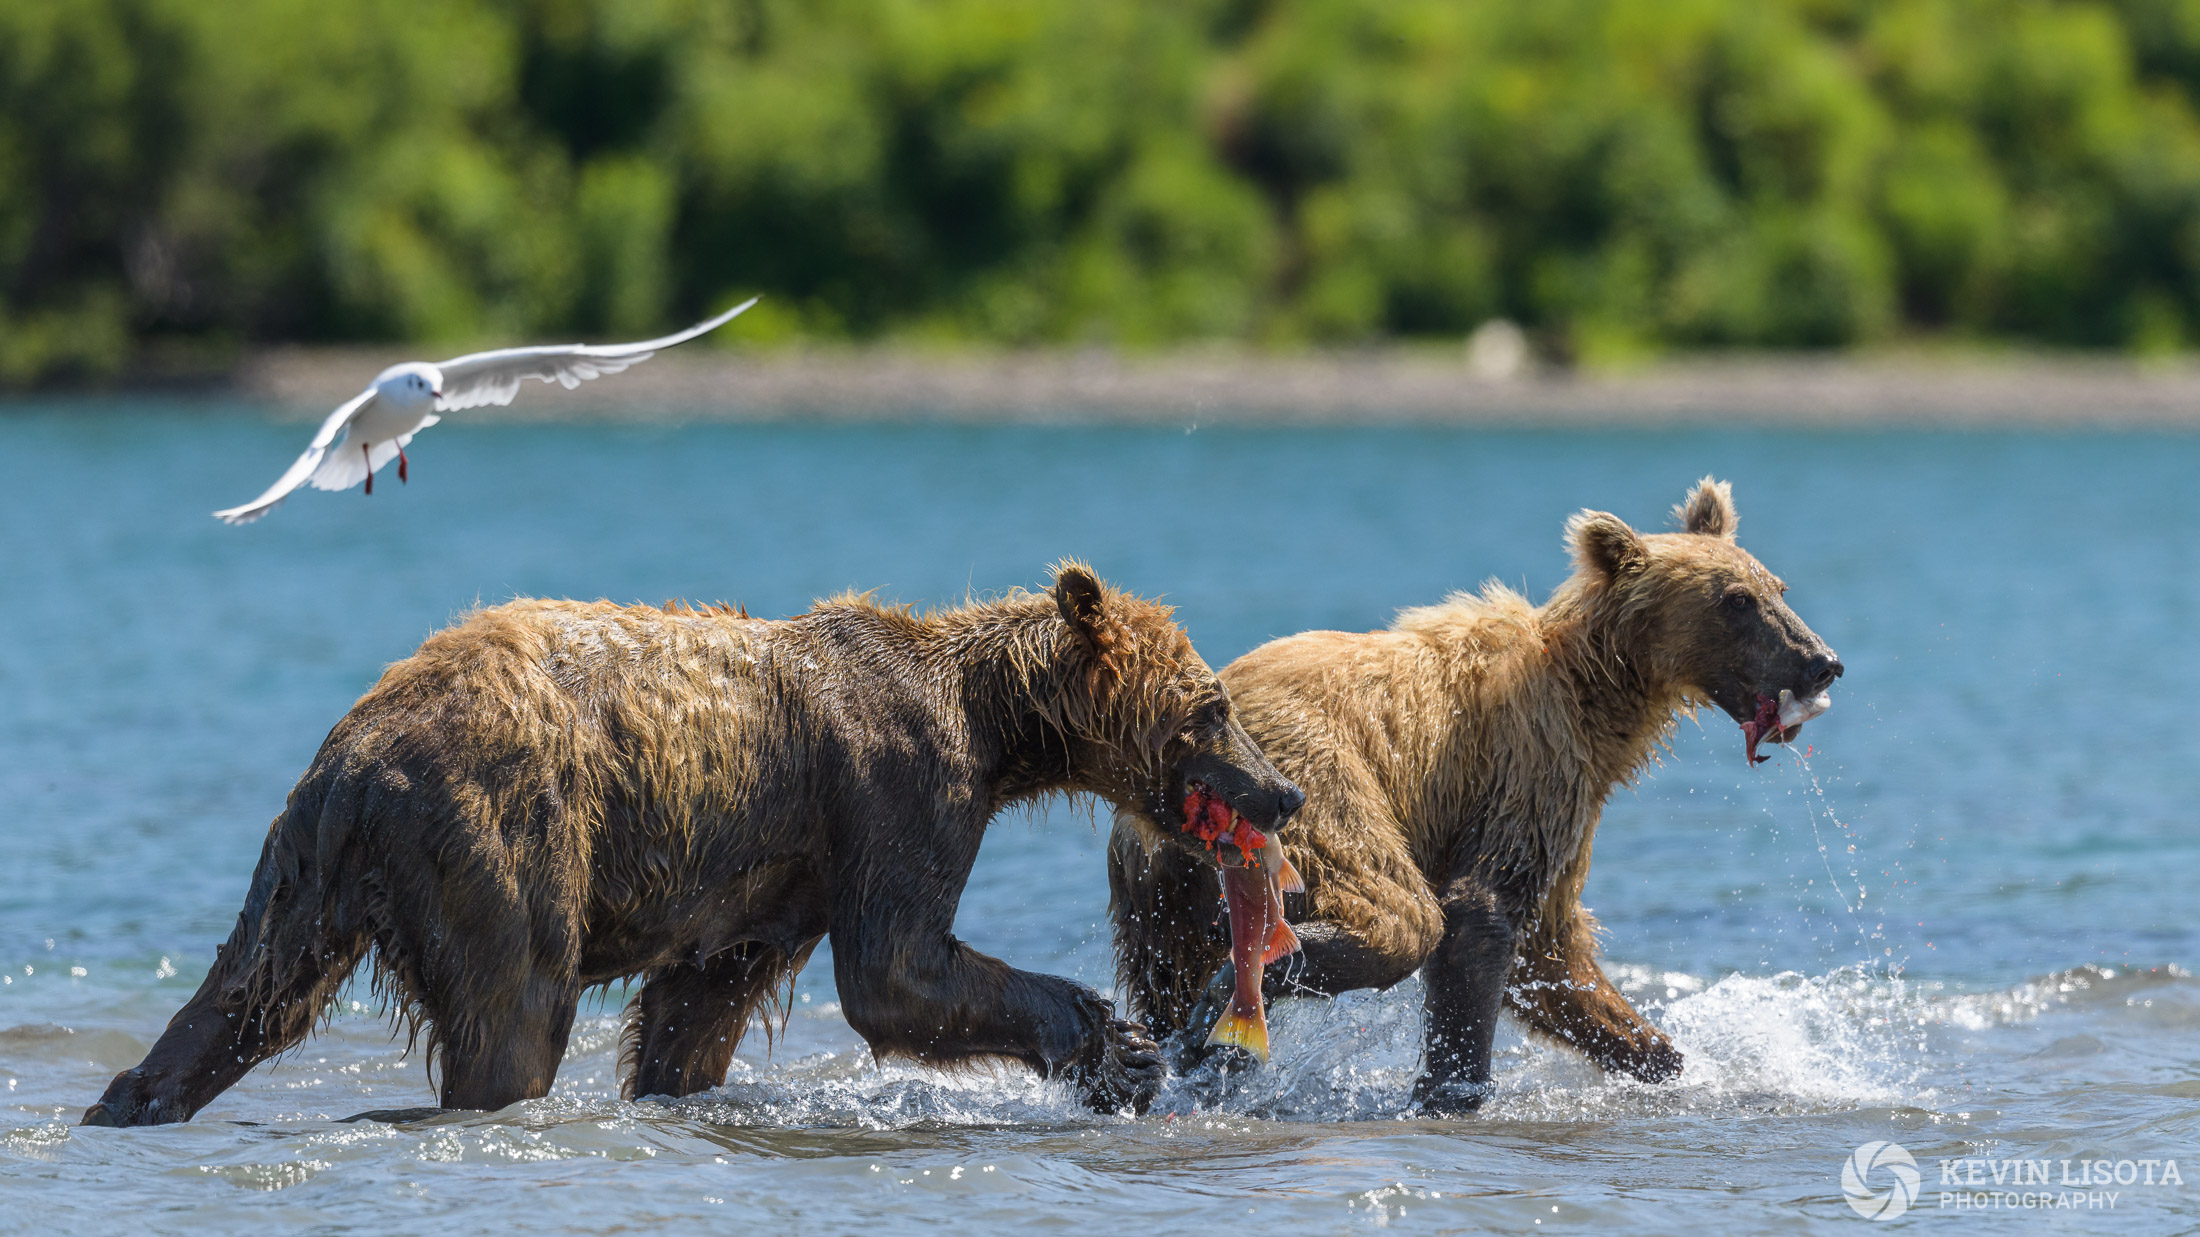 Aperture of f/6.3 to account for the staggered depth of the bears. The gull is not sharp at this aperture. Nikon D850, f/6.3, 500 mm, subject distance 50 m, DoF 3.8 m